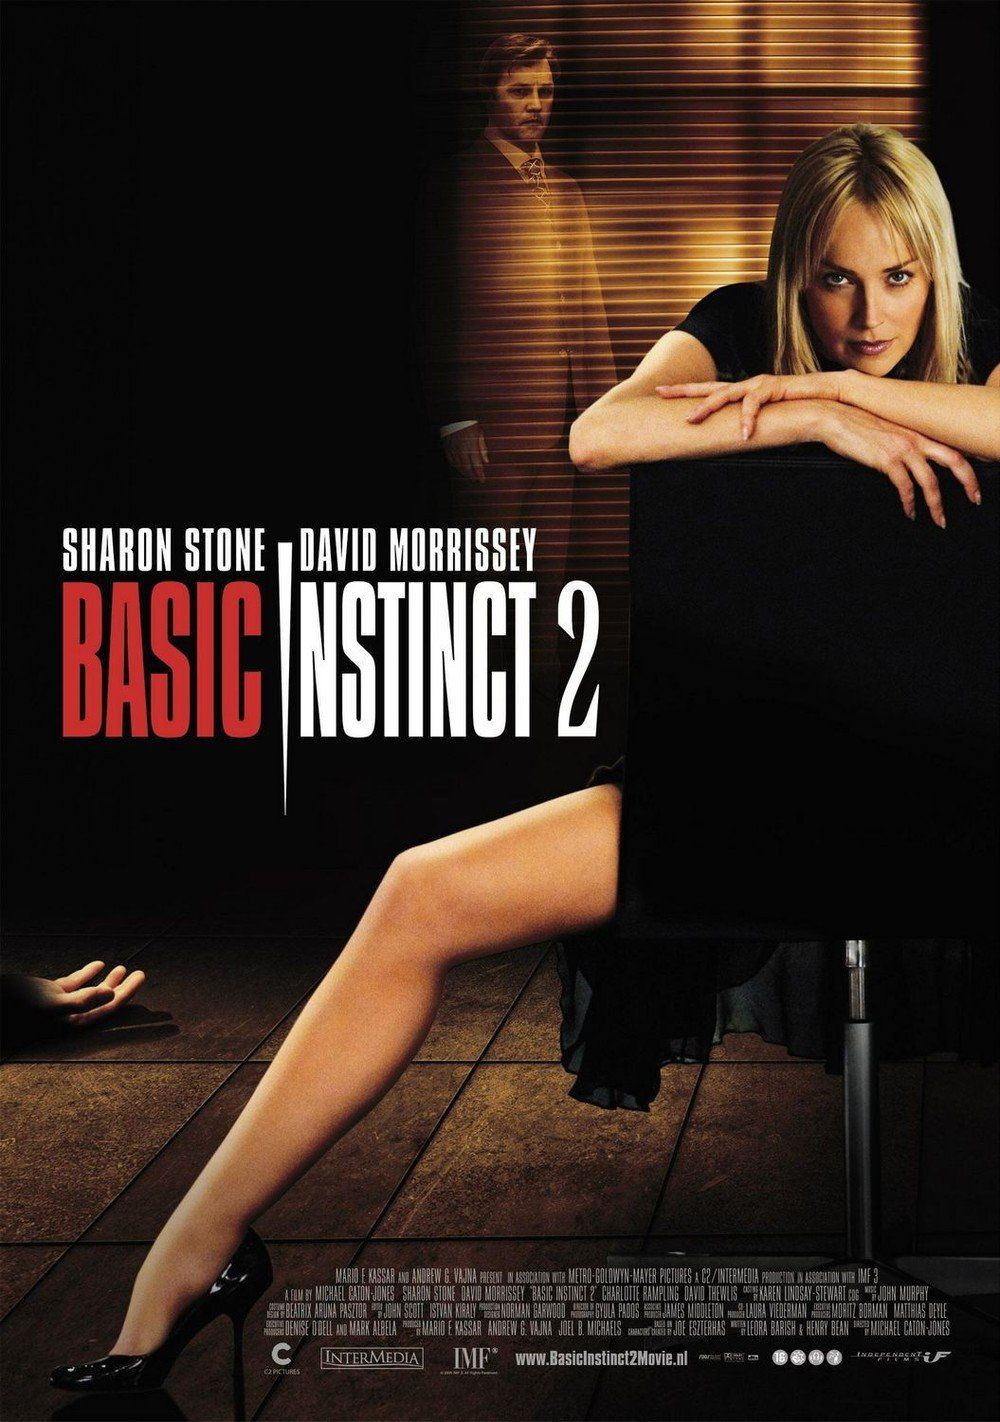 basic instinct 2 free download full movie